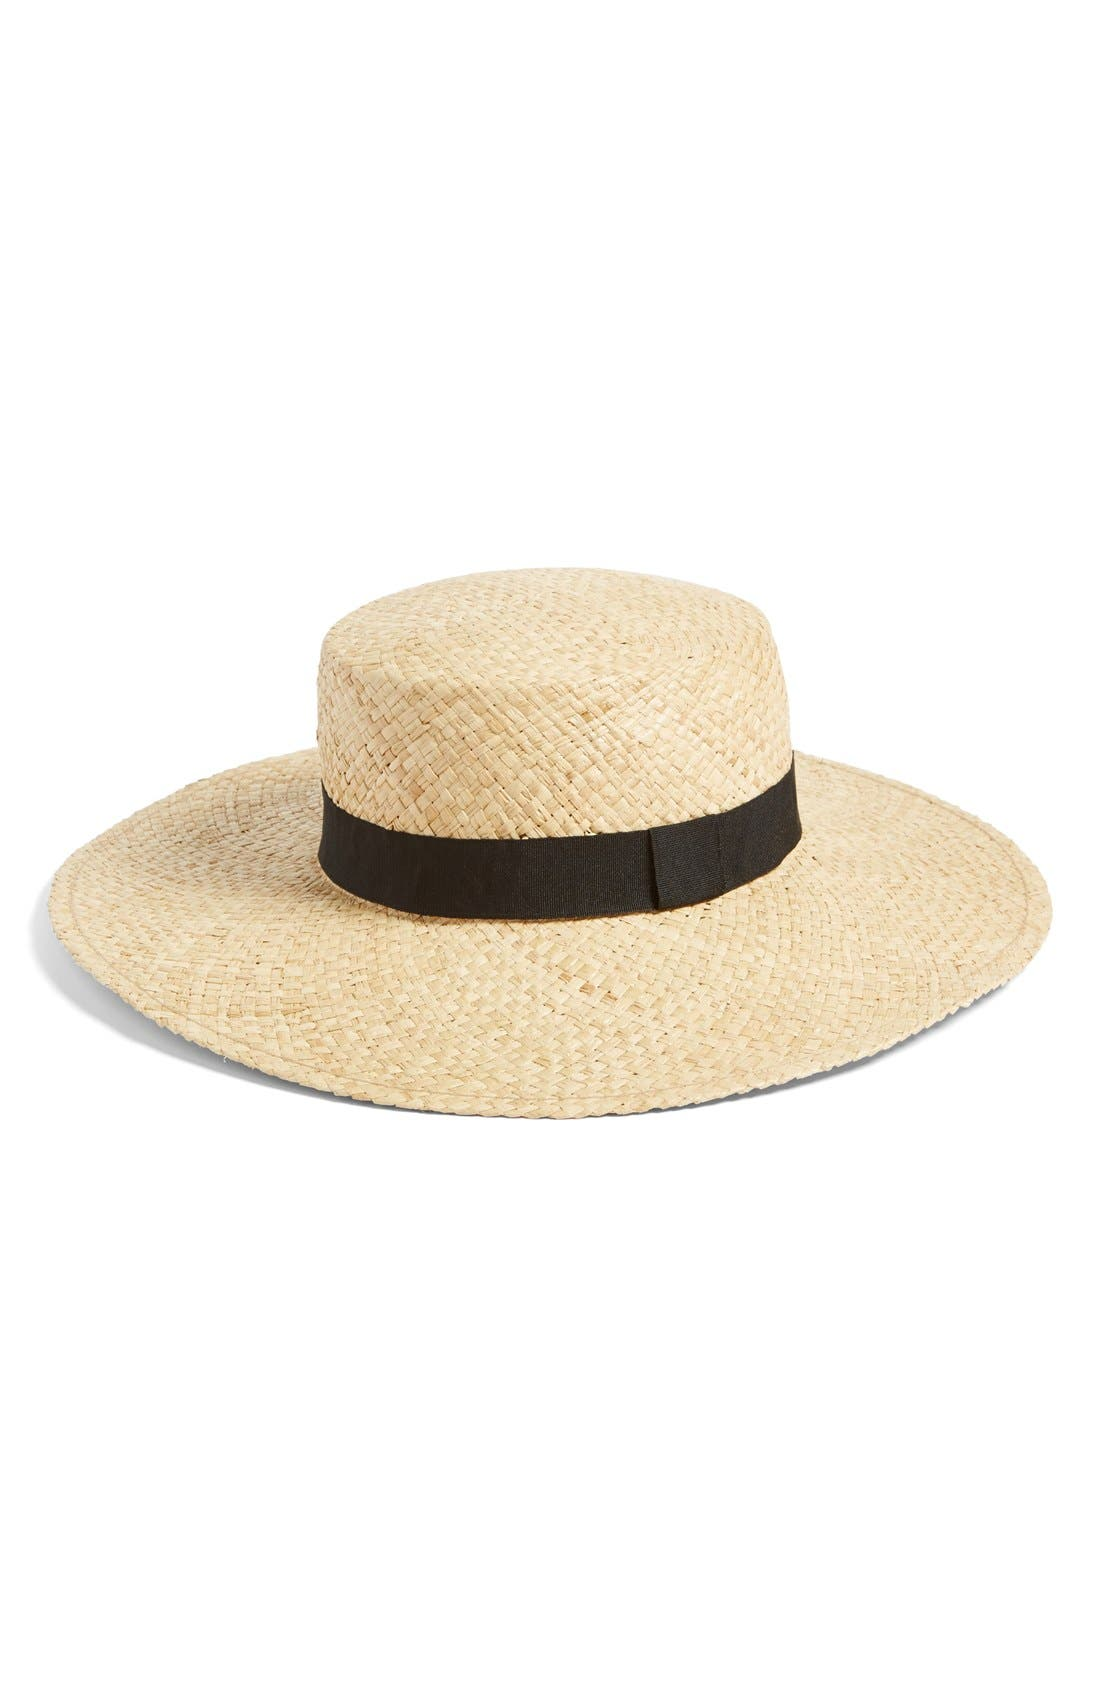 Main Image - BP Wide Brim Raffia Boater Hat